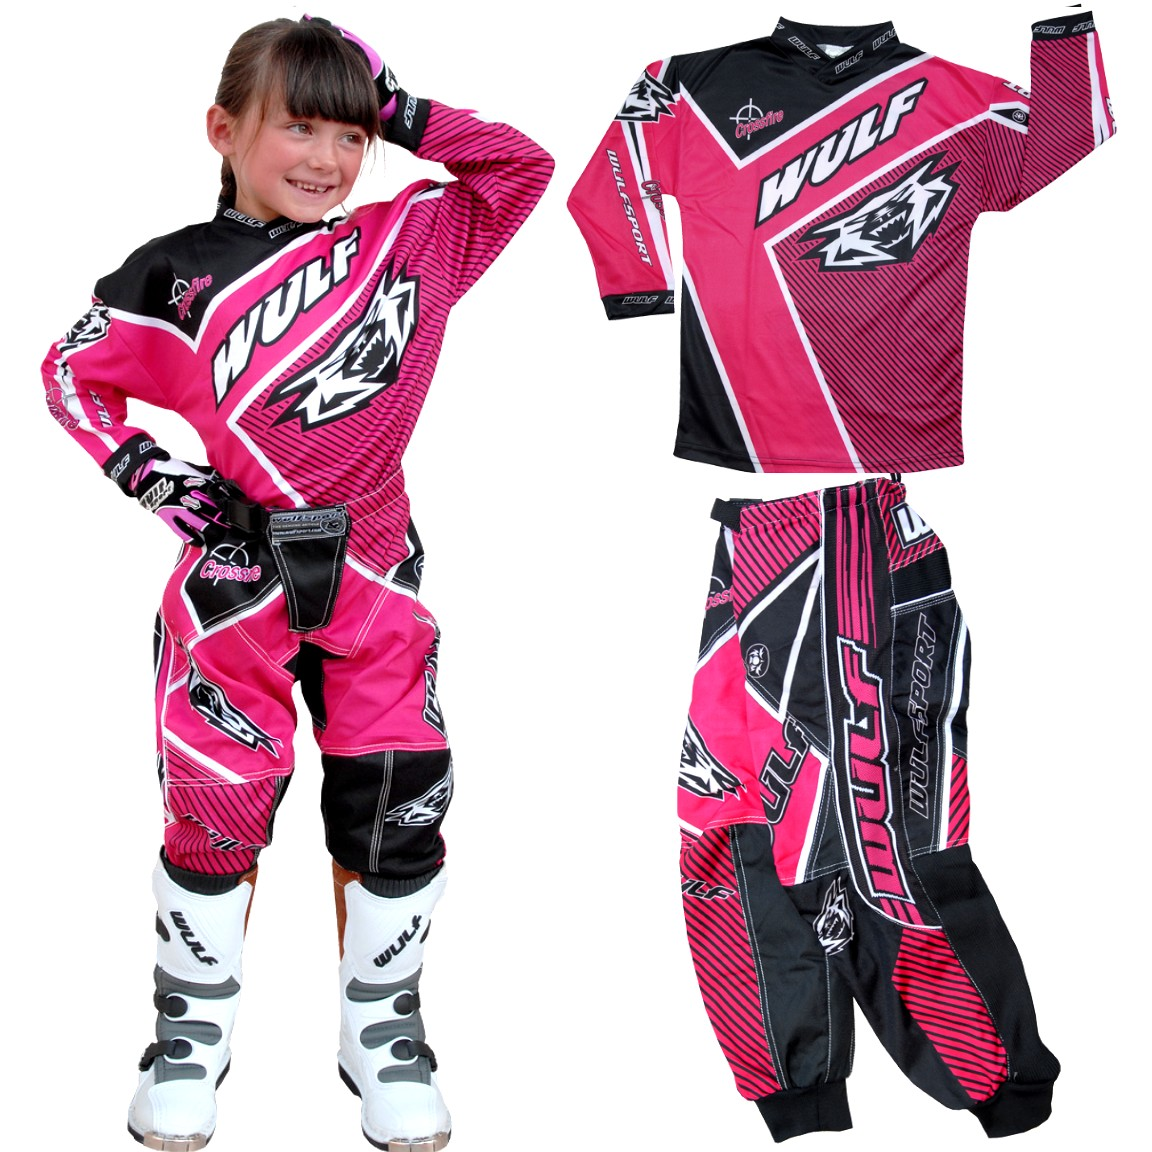 equipement motocross enfant. Black Bedroom Furniture Sets. Home Design Ideas